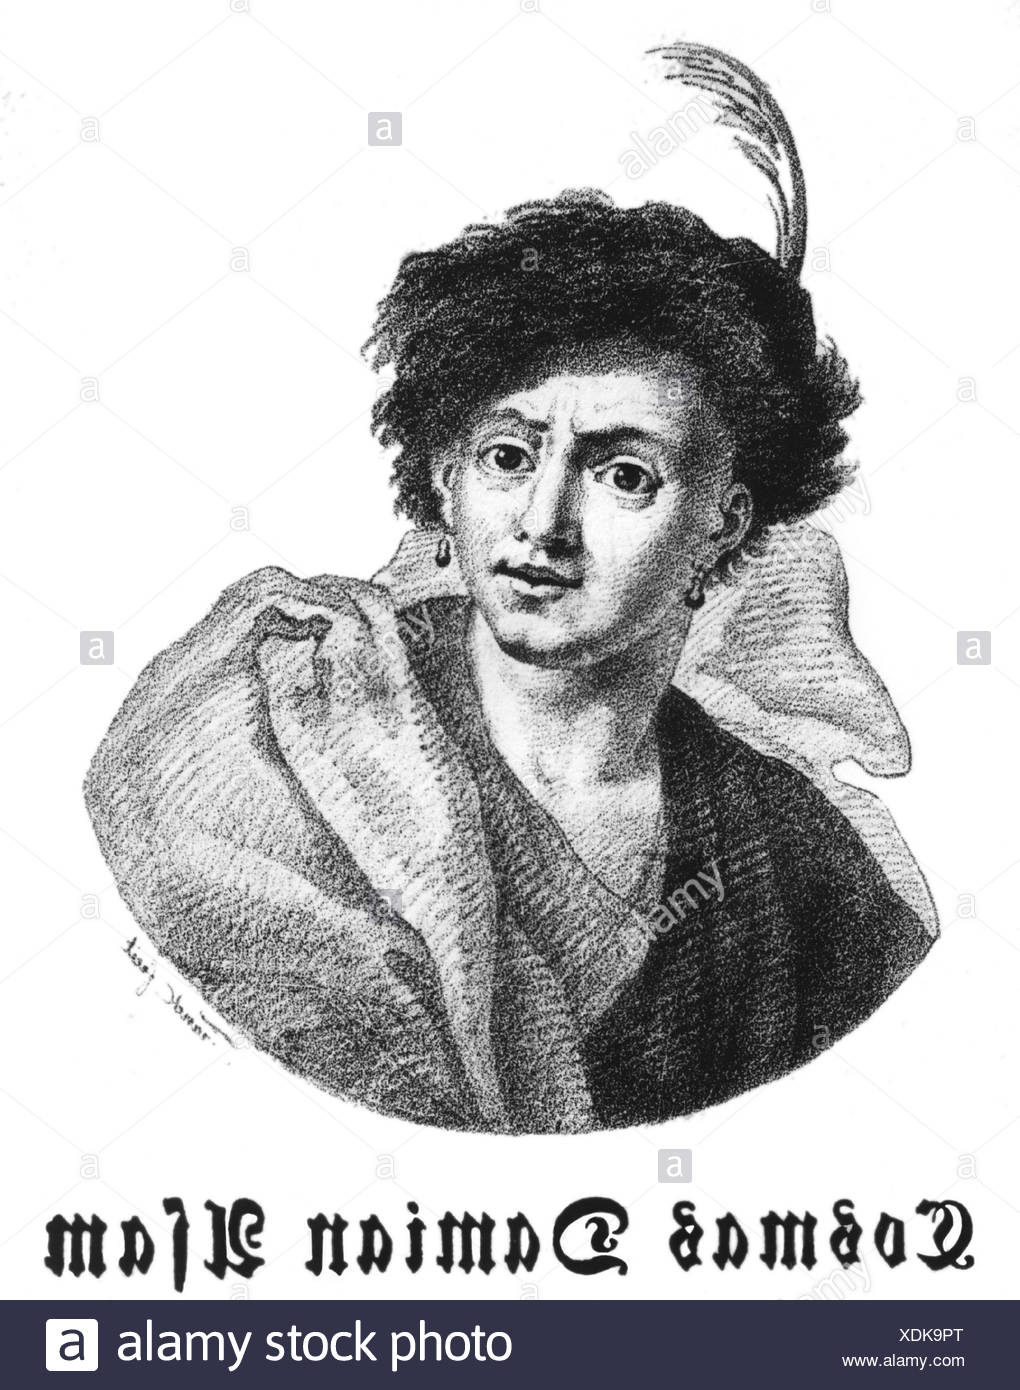 Asam, Cosmas Damian, 28.9.1686 - 10.5.1742, German painter, sculptor and architect, portrait, wood engraving, 19th century, , Artist's Copyright has not to be cleared - Stock Image